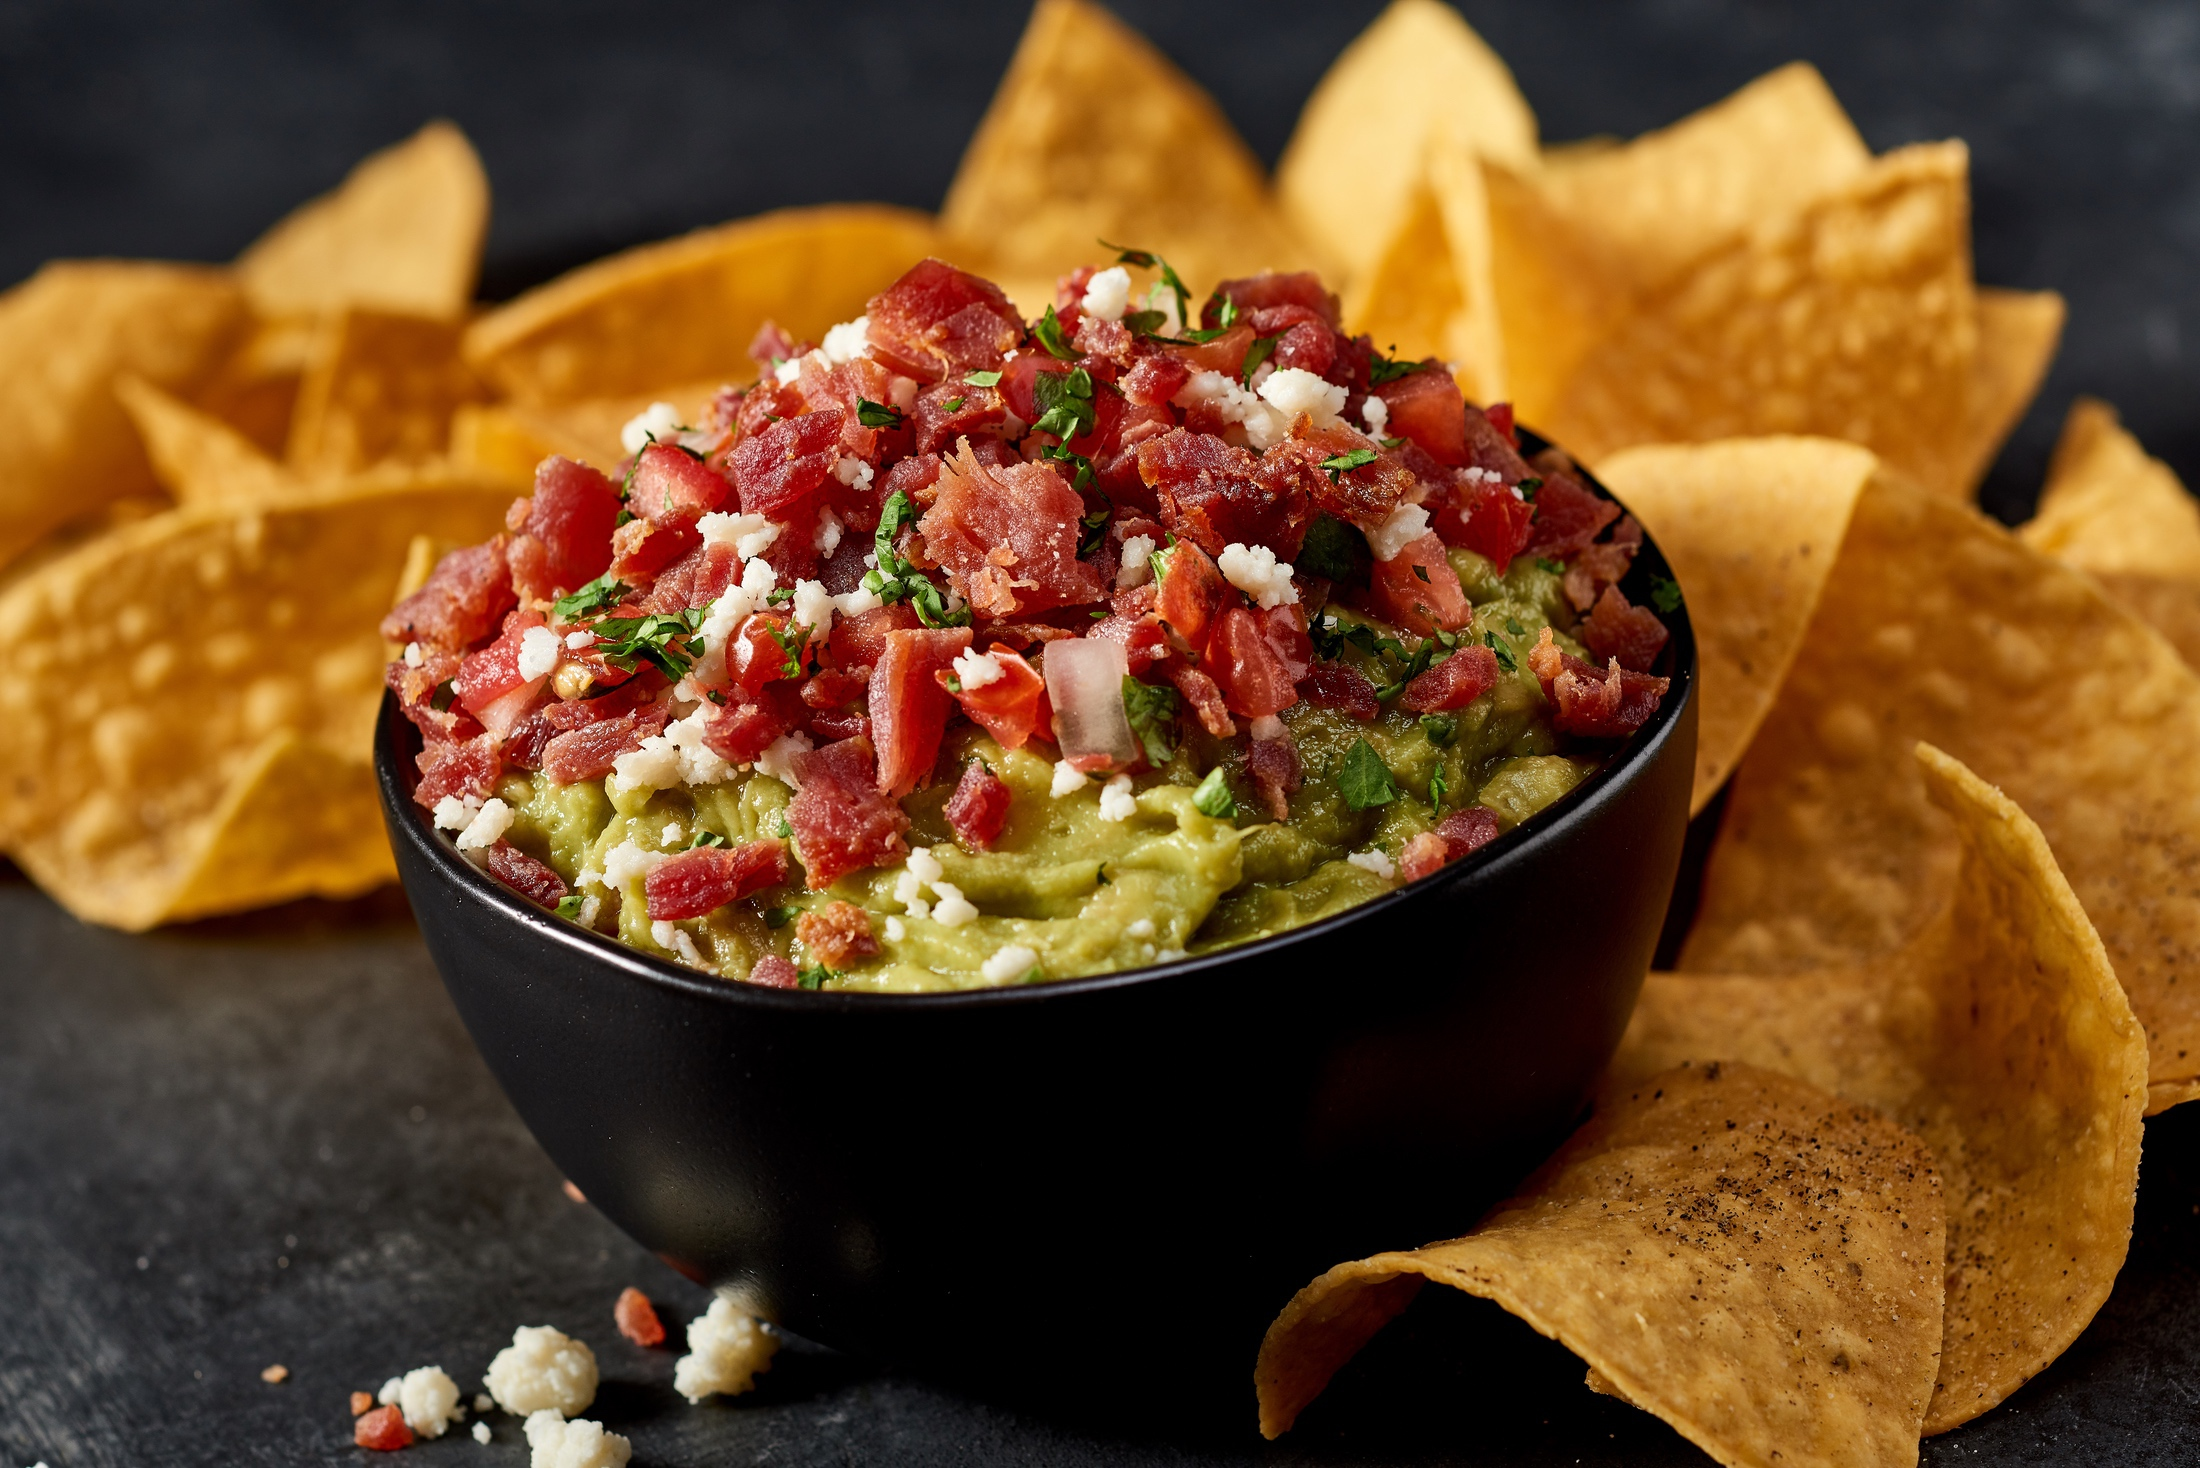 AaronVan_Food_Tijuana_Flats_Loaded_Guac